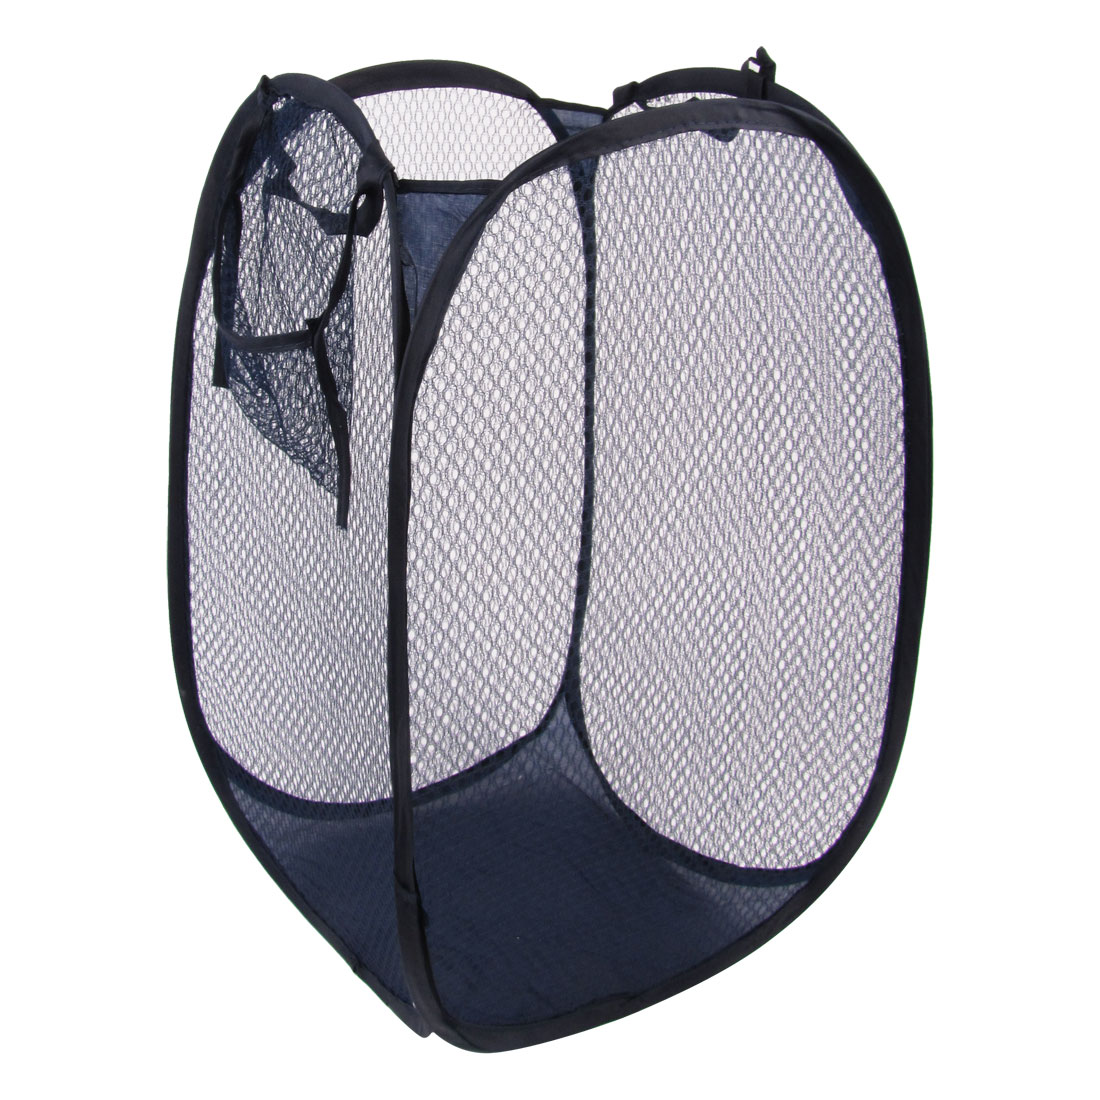 Foldable Mesh Designed Washing Clothes Laundry Basket Bins Hamper Steel Blue